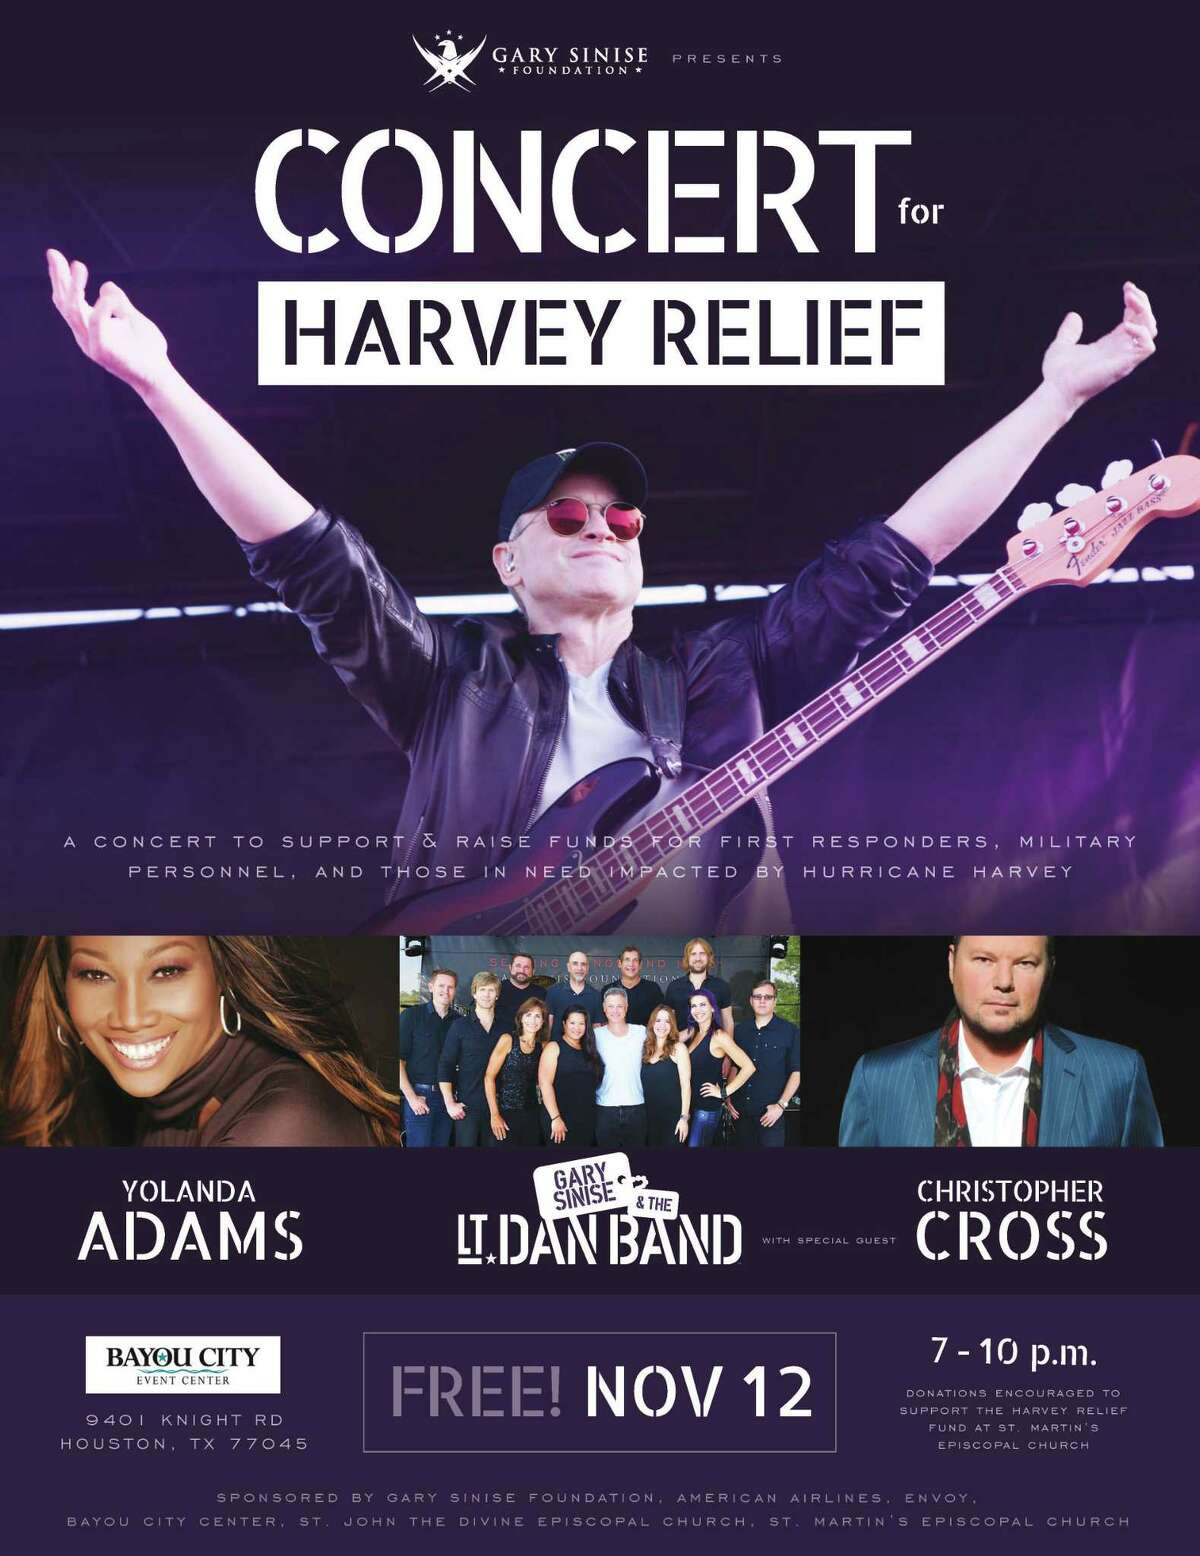 The Lt. Dan Band, Yolanda Adams, and Christopher cross will perform at the Bayou City Event Center on Sunday at a benefit concert for St. Martin's Episcopal Church's Harvey Relief Fund.